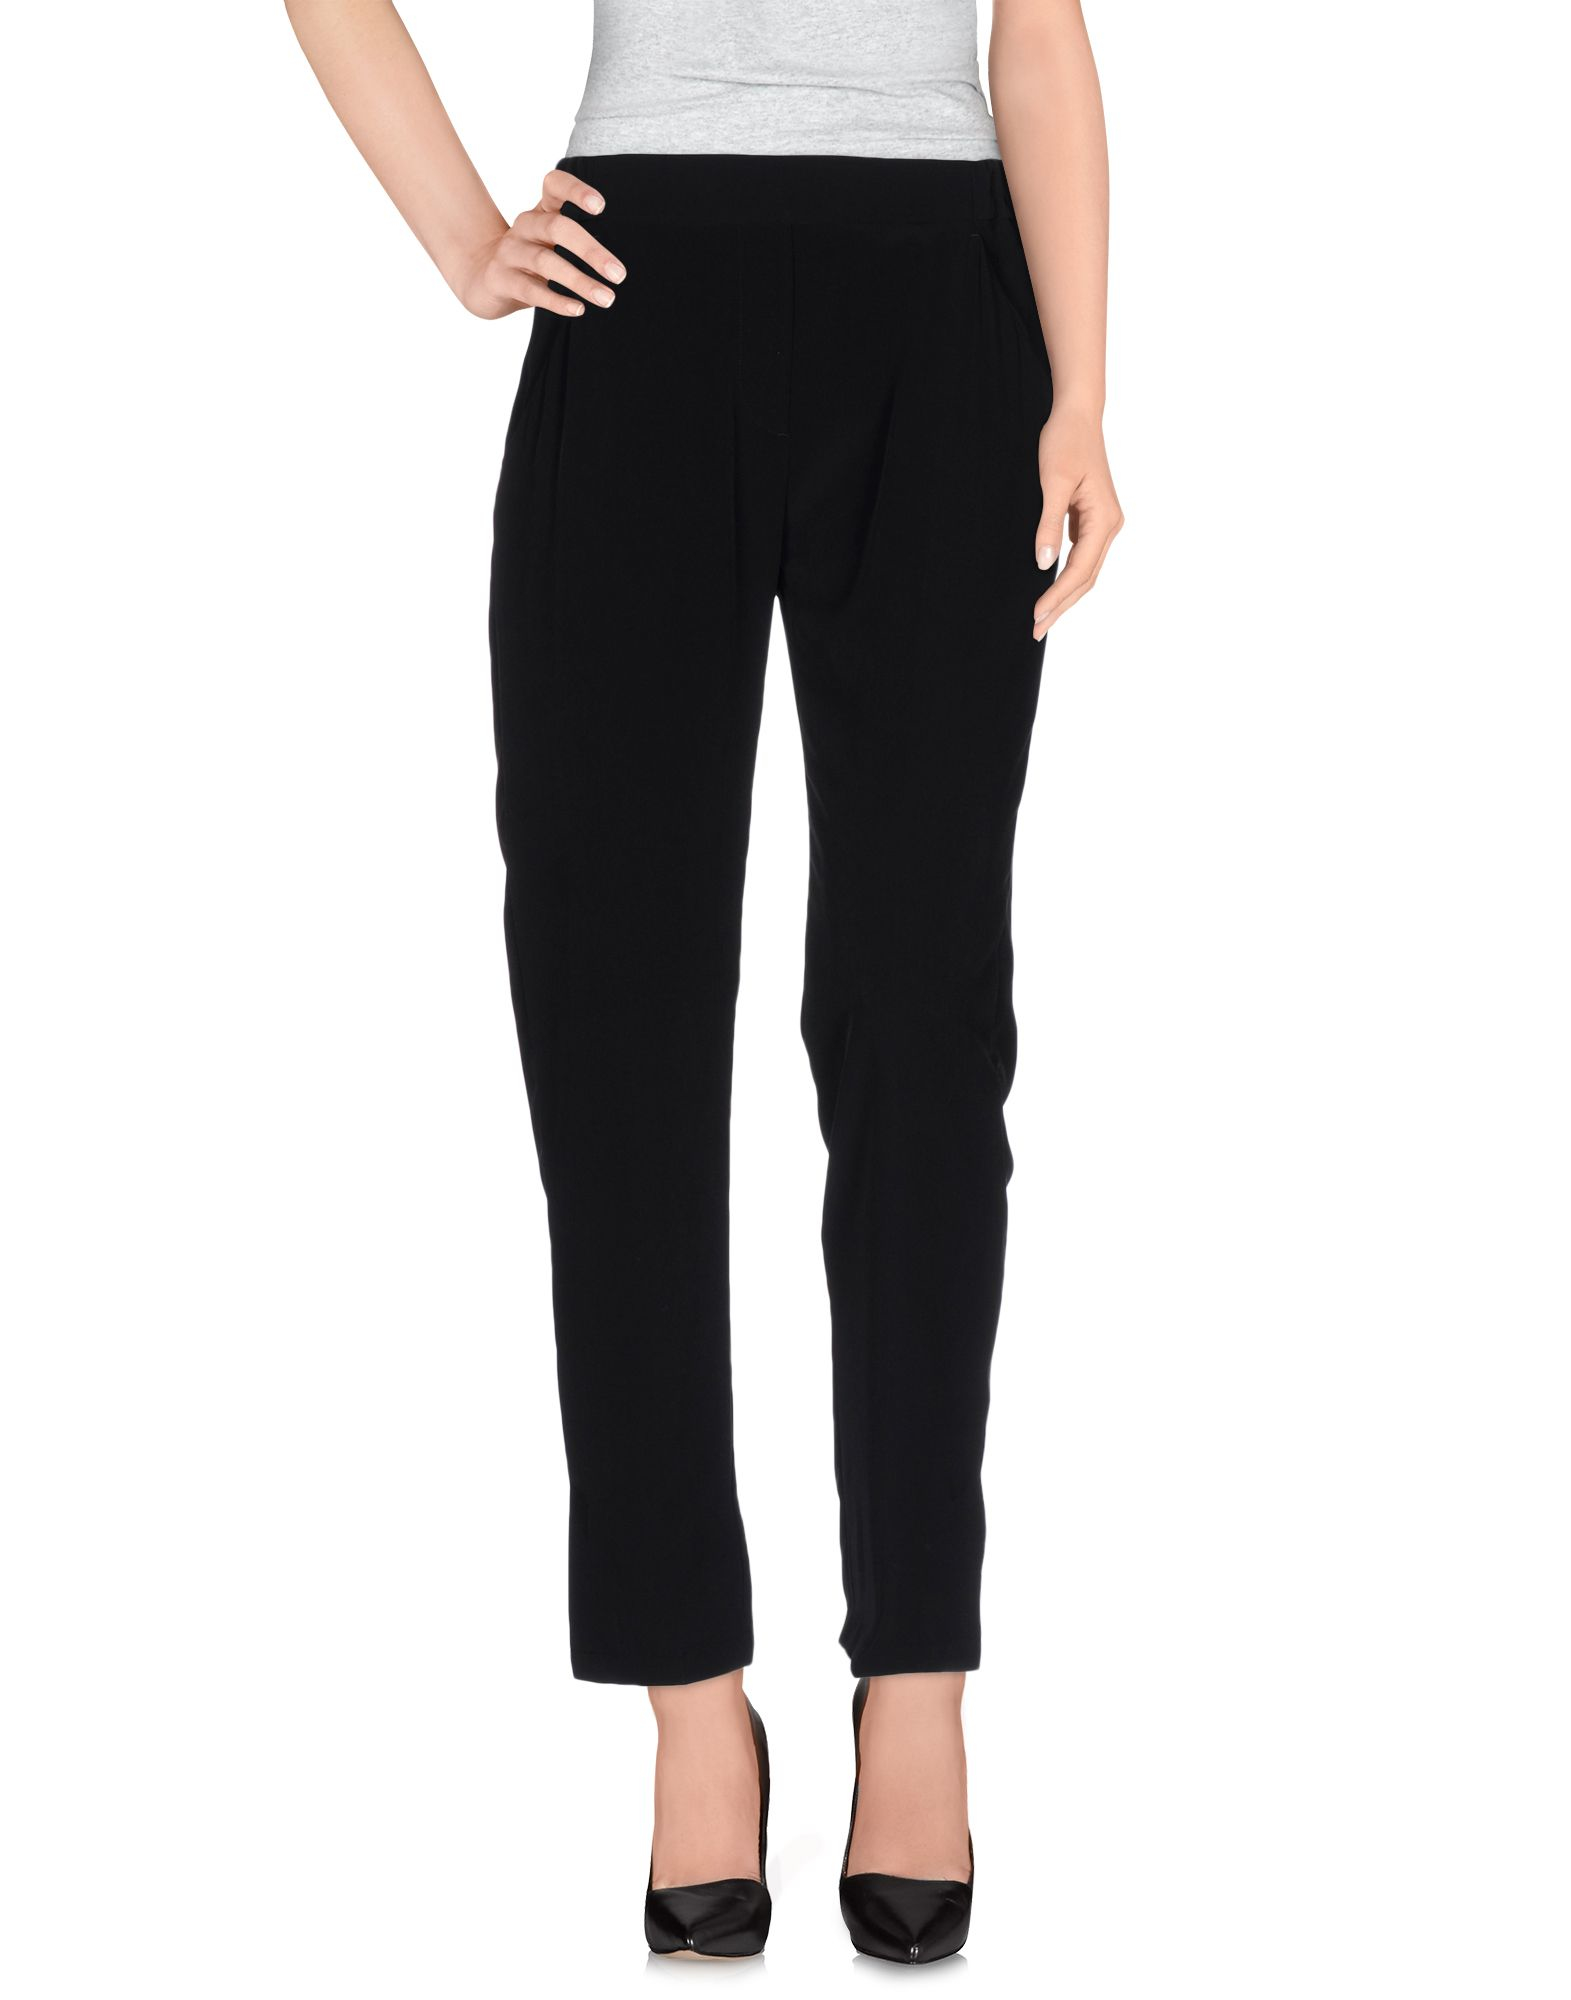 Mm6 by maison martin margiela casual pants in black lyst for 10 moulmein rise la maison